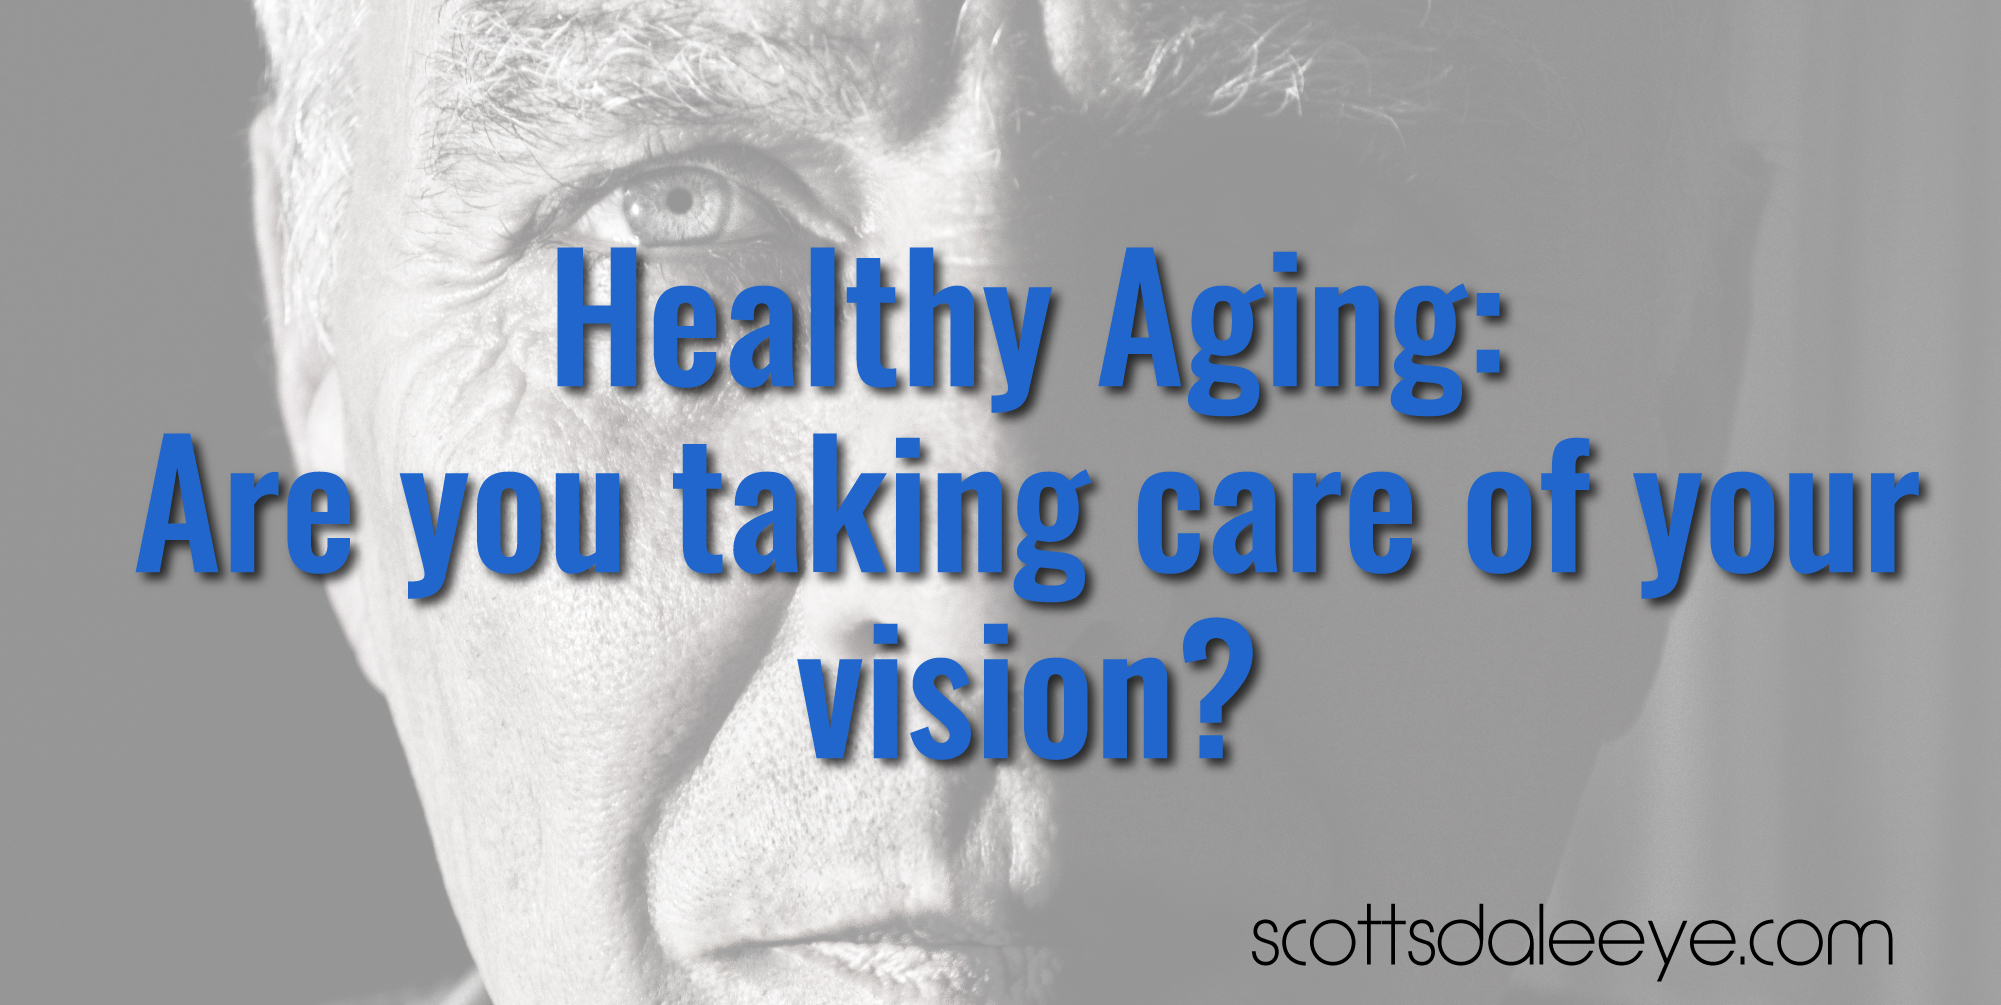 Healthy Aging: Are you taking care of your vision?